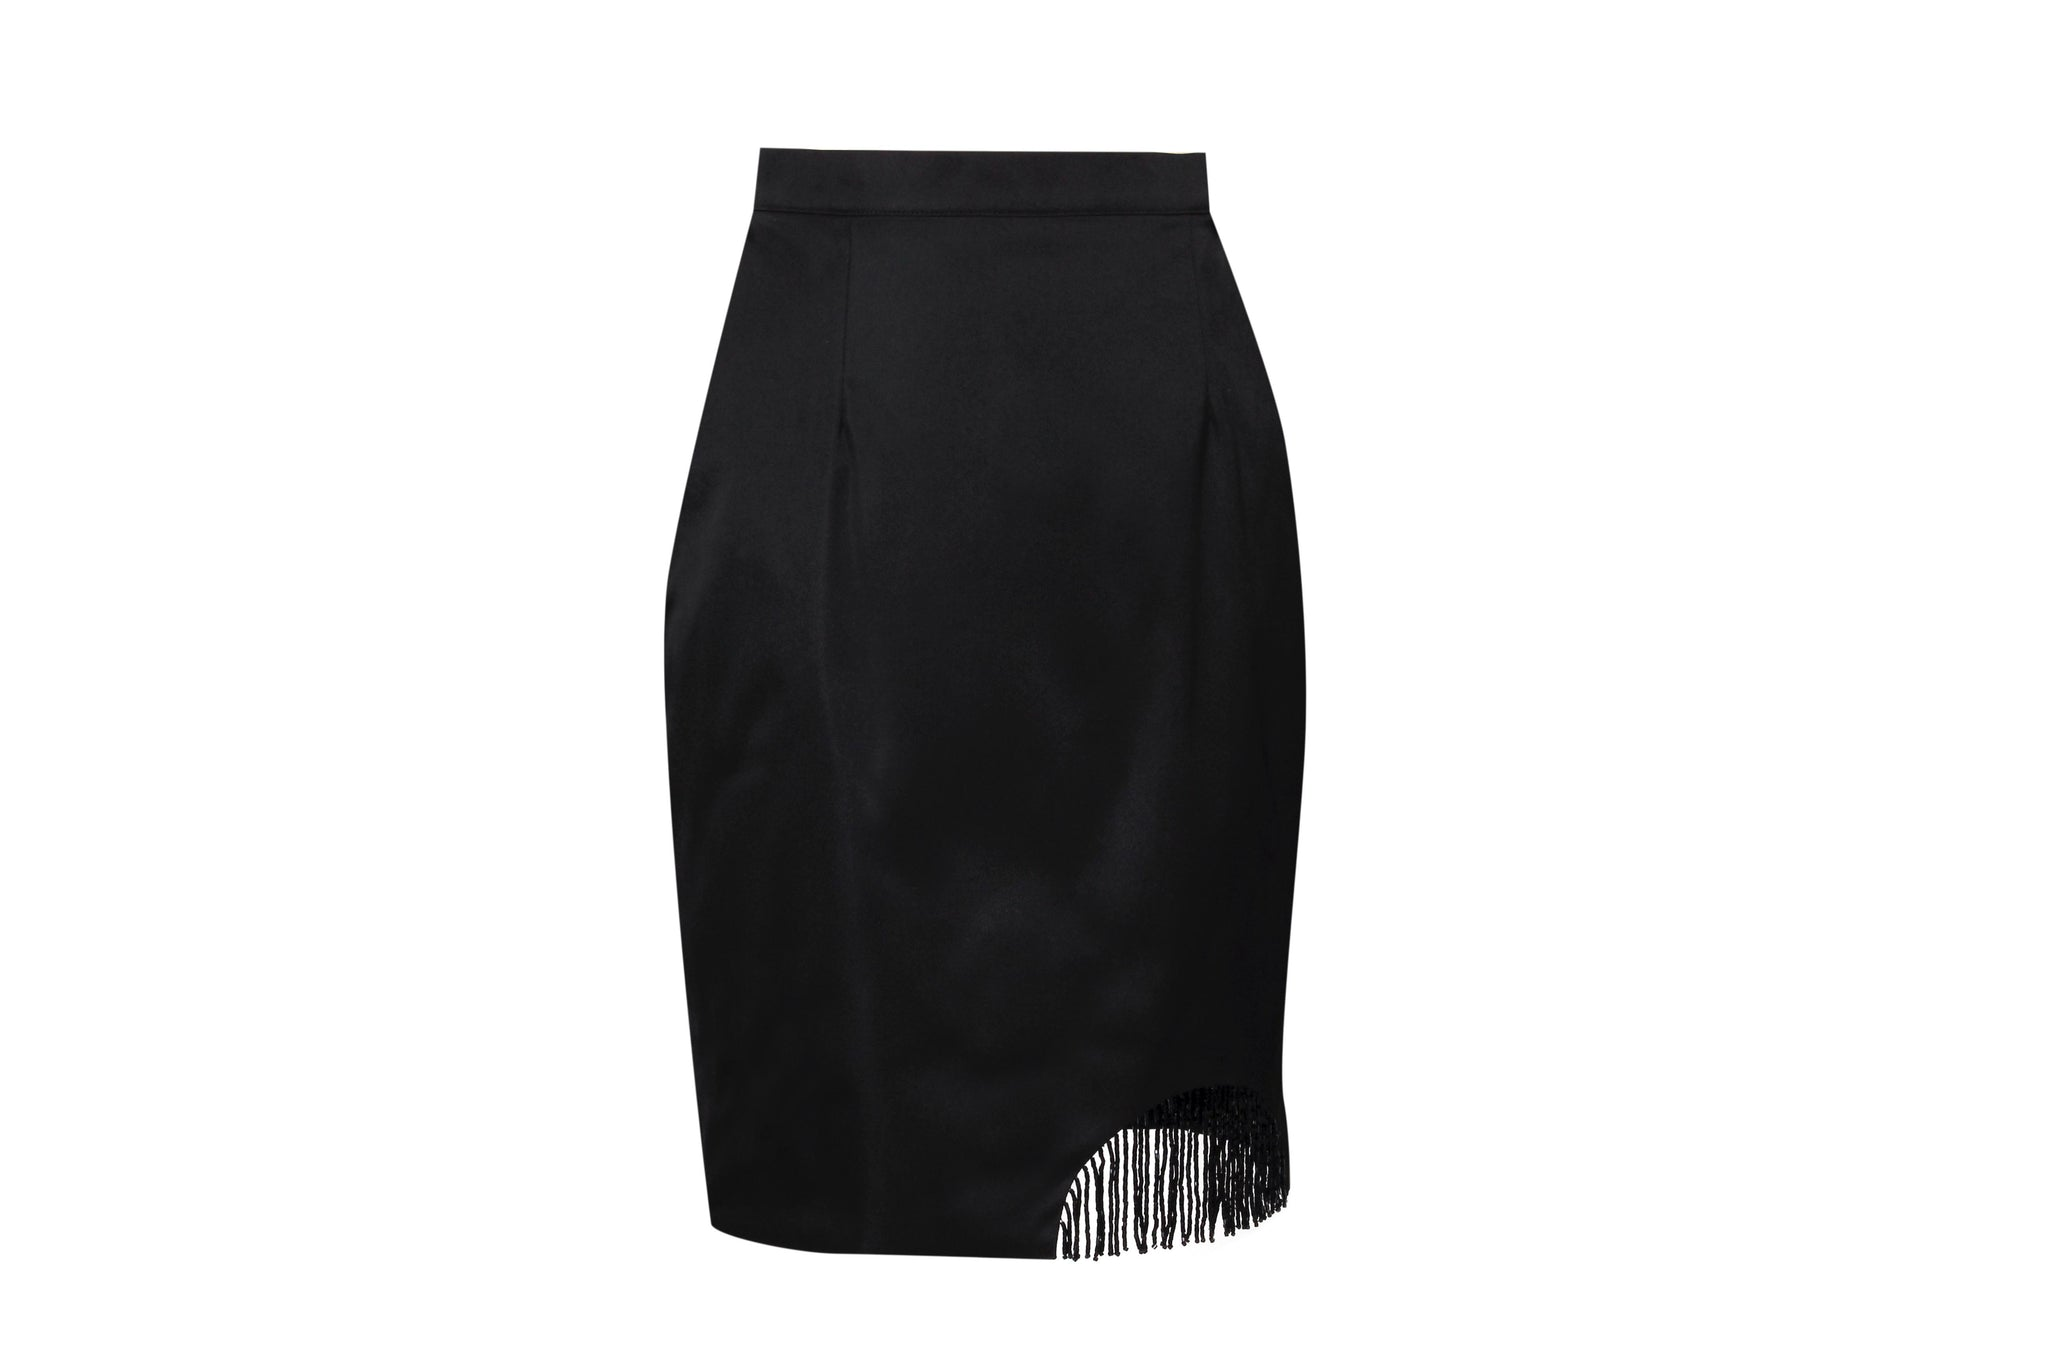 CURVE-CUT SKIRT